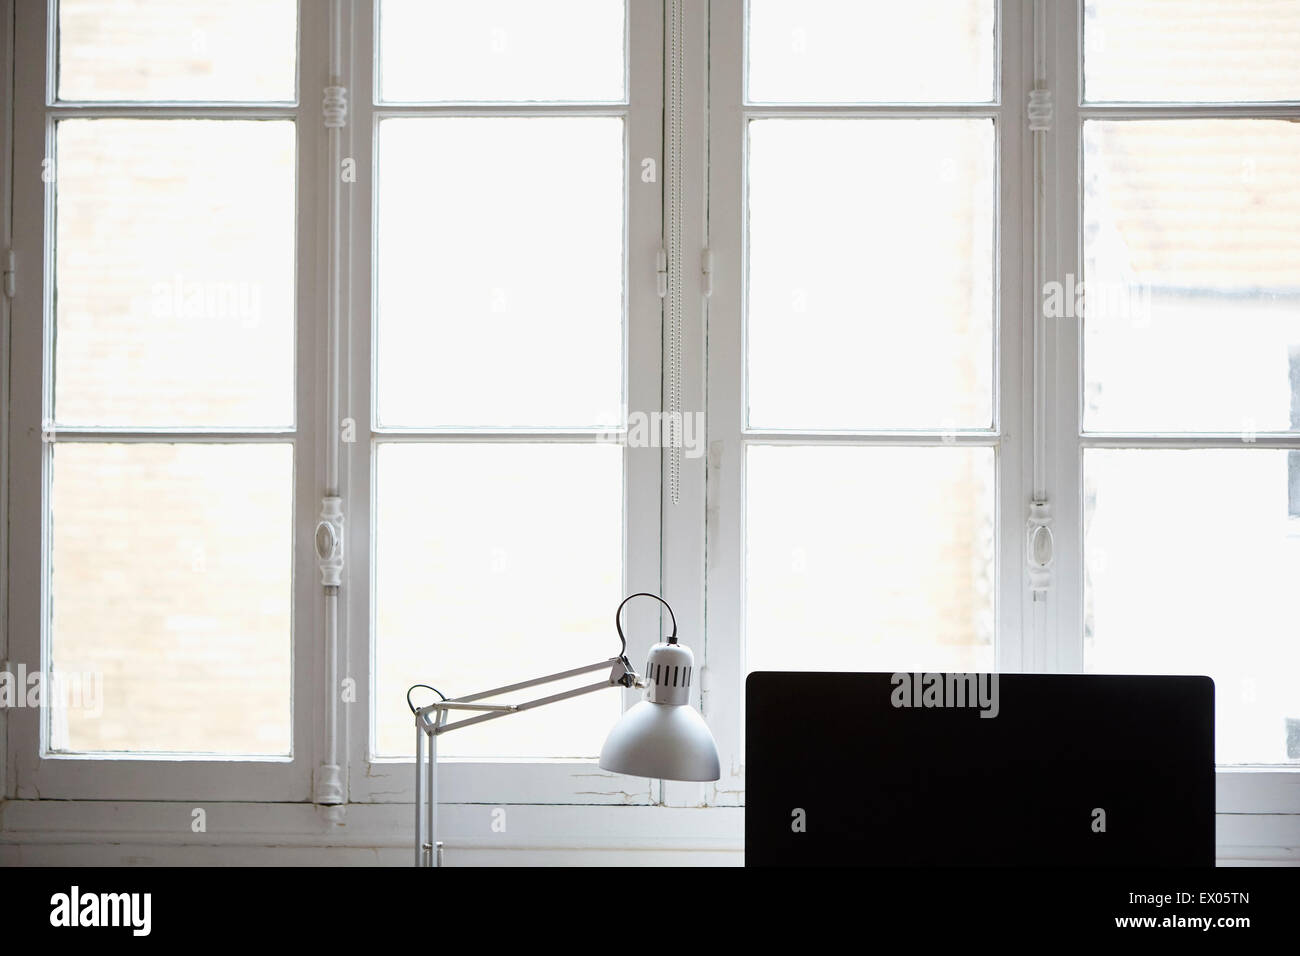 Computer monitor and desk lamp by window - Stock Image